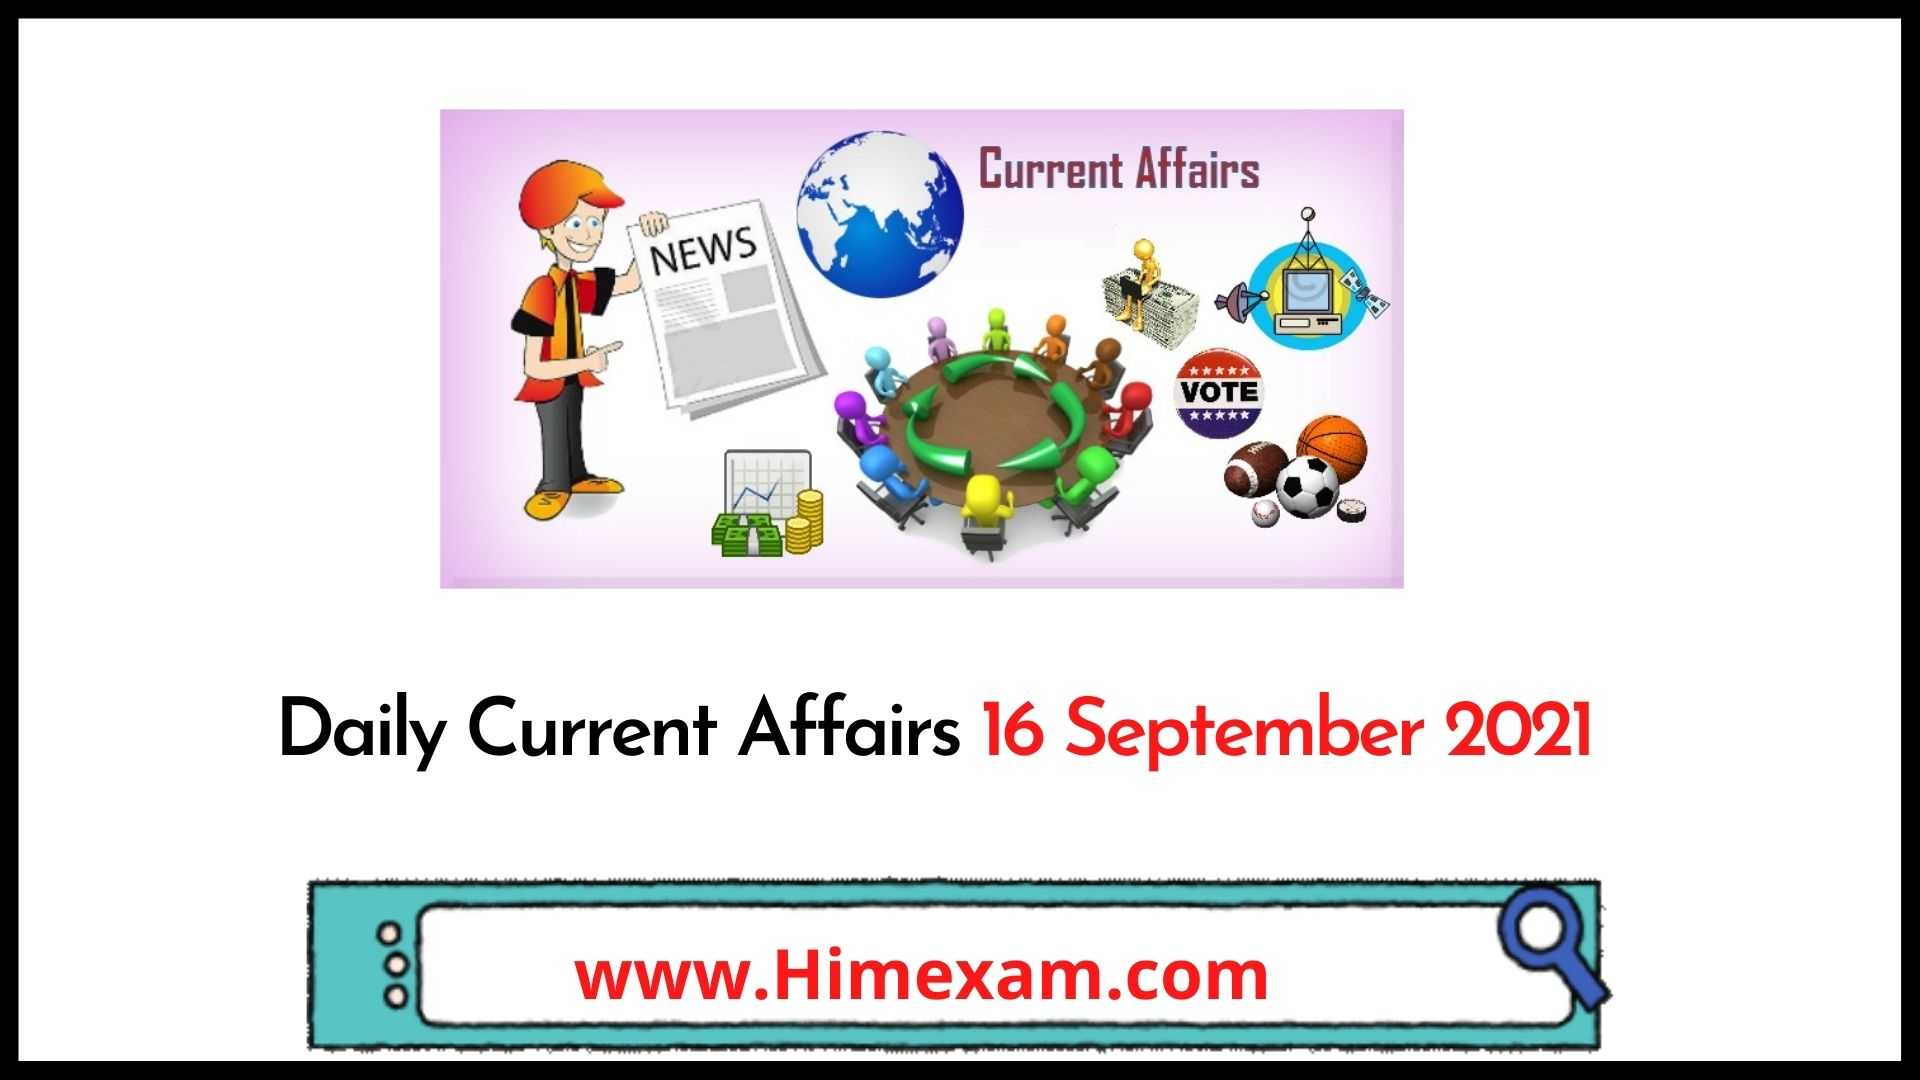 Daily Current Affairs 16 September 2021